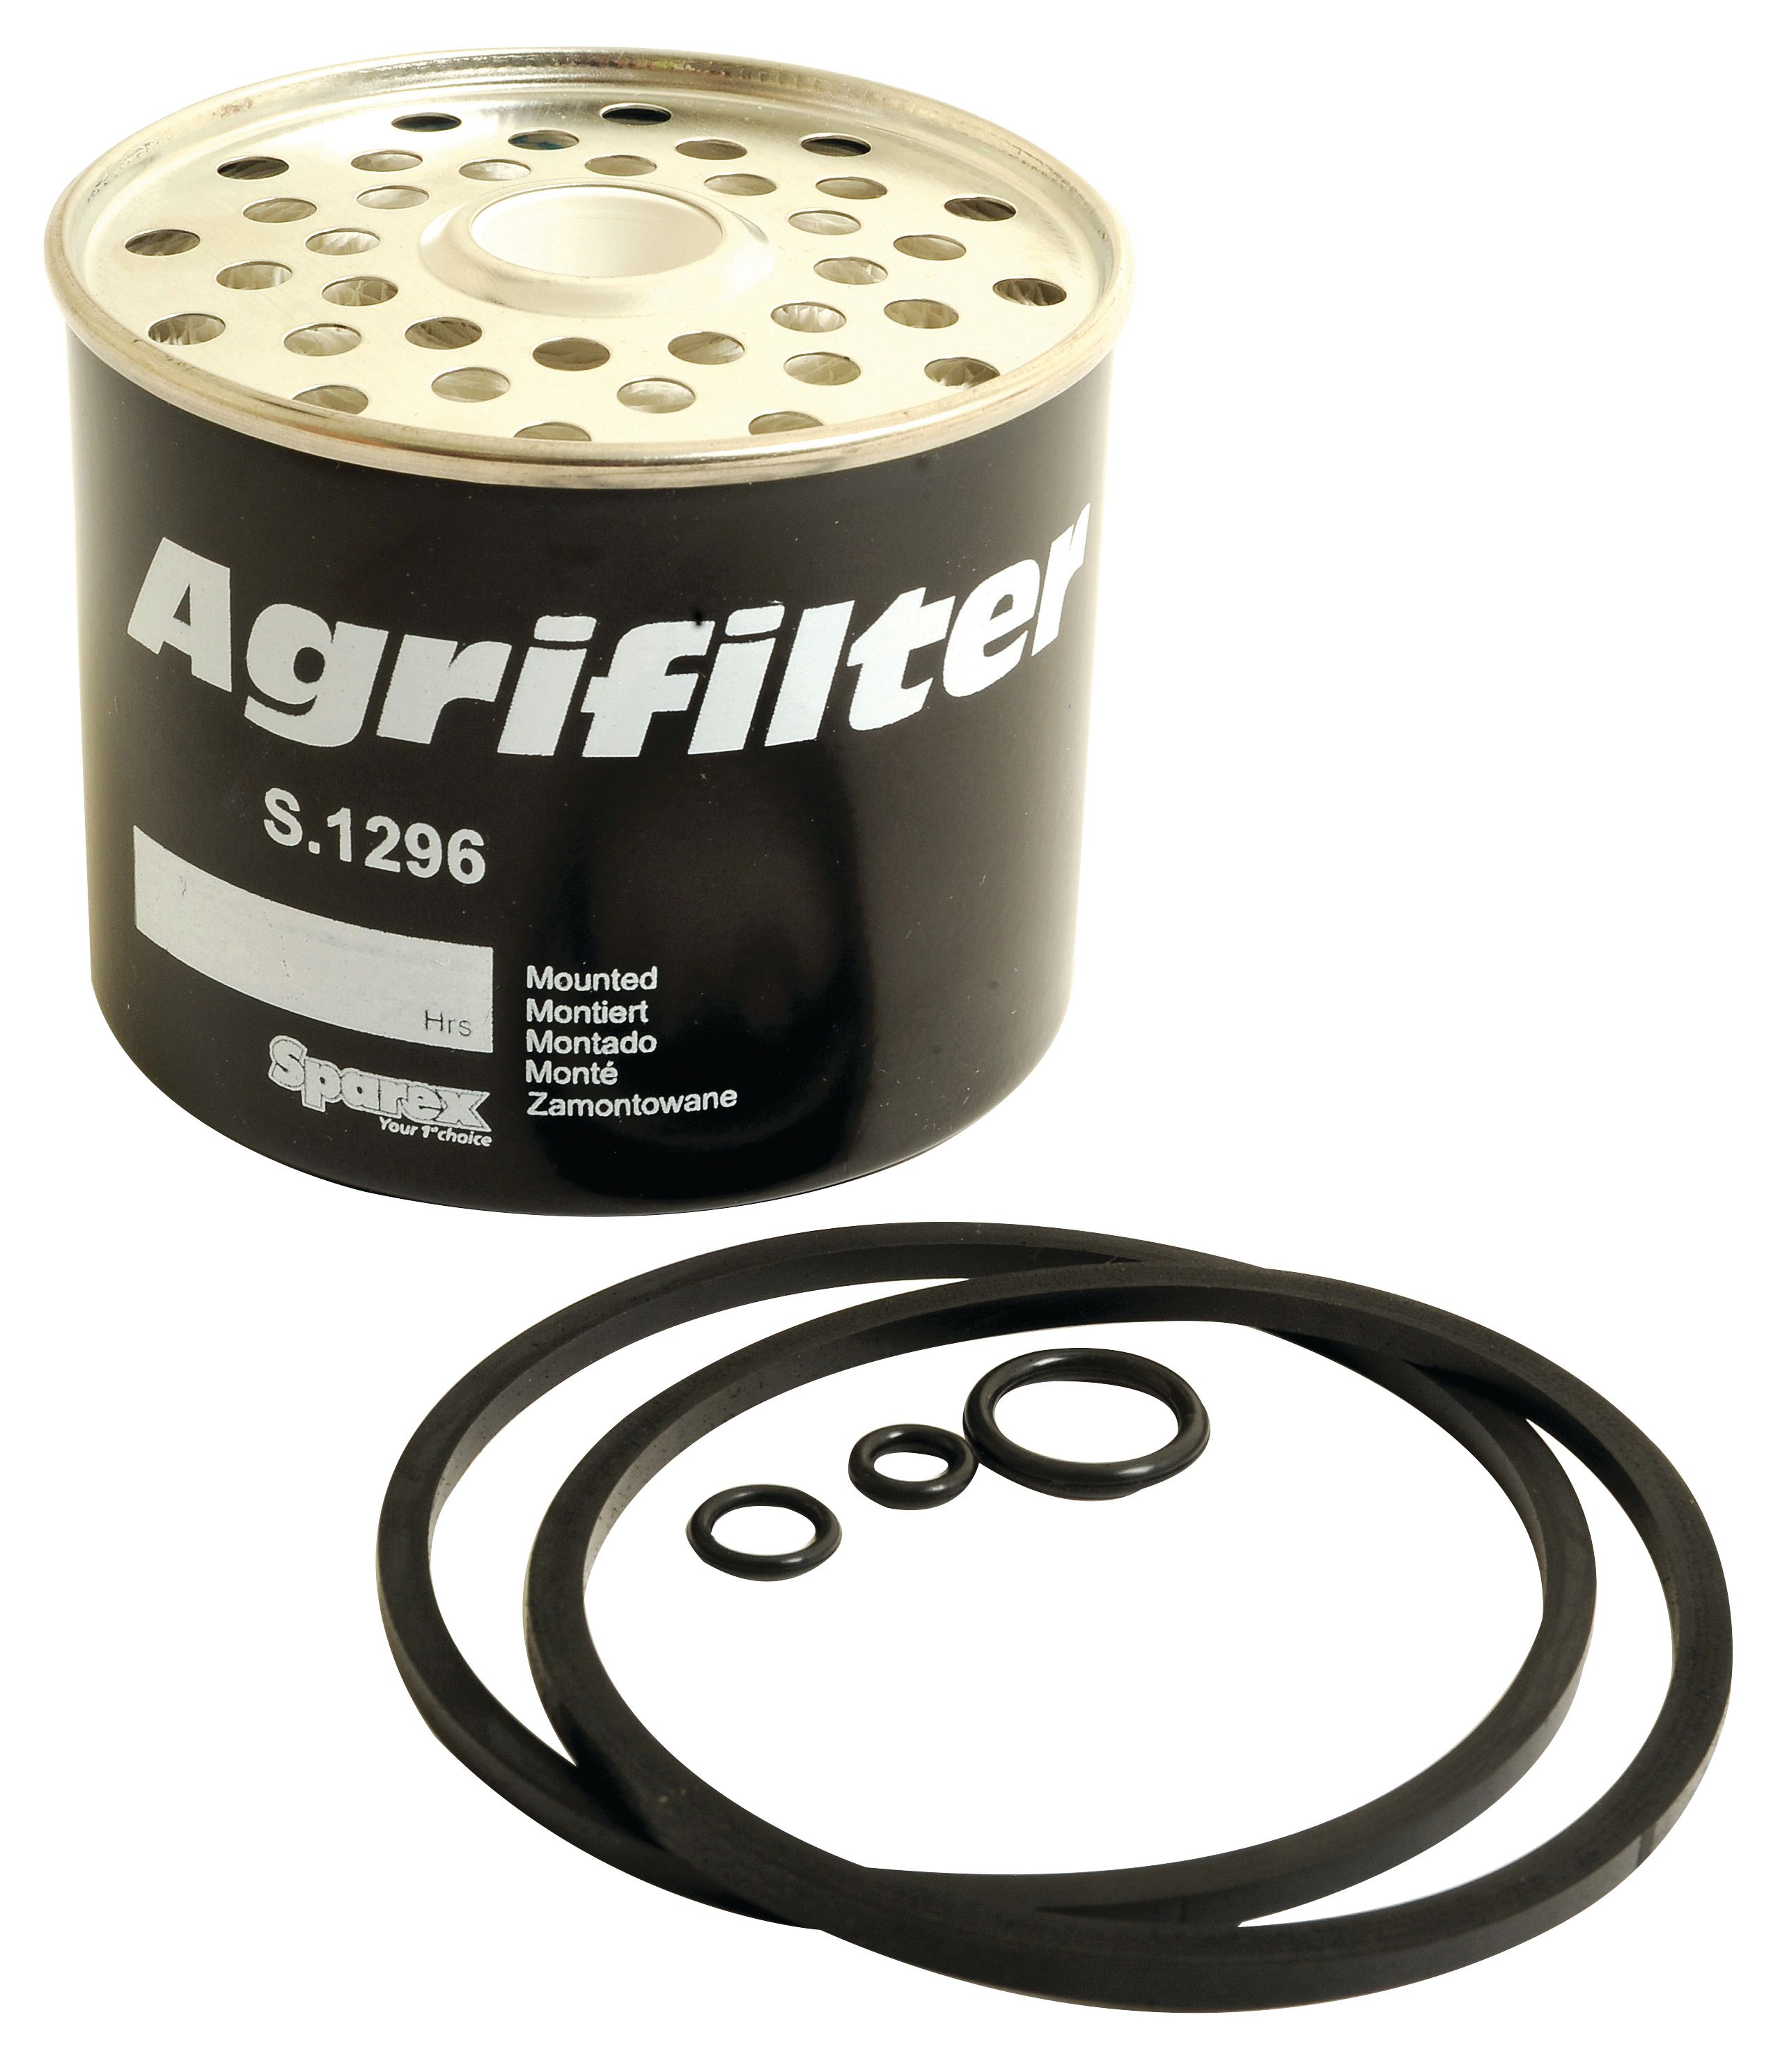 MITSUBISHI FUEL FILTER 1296